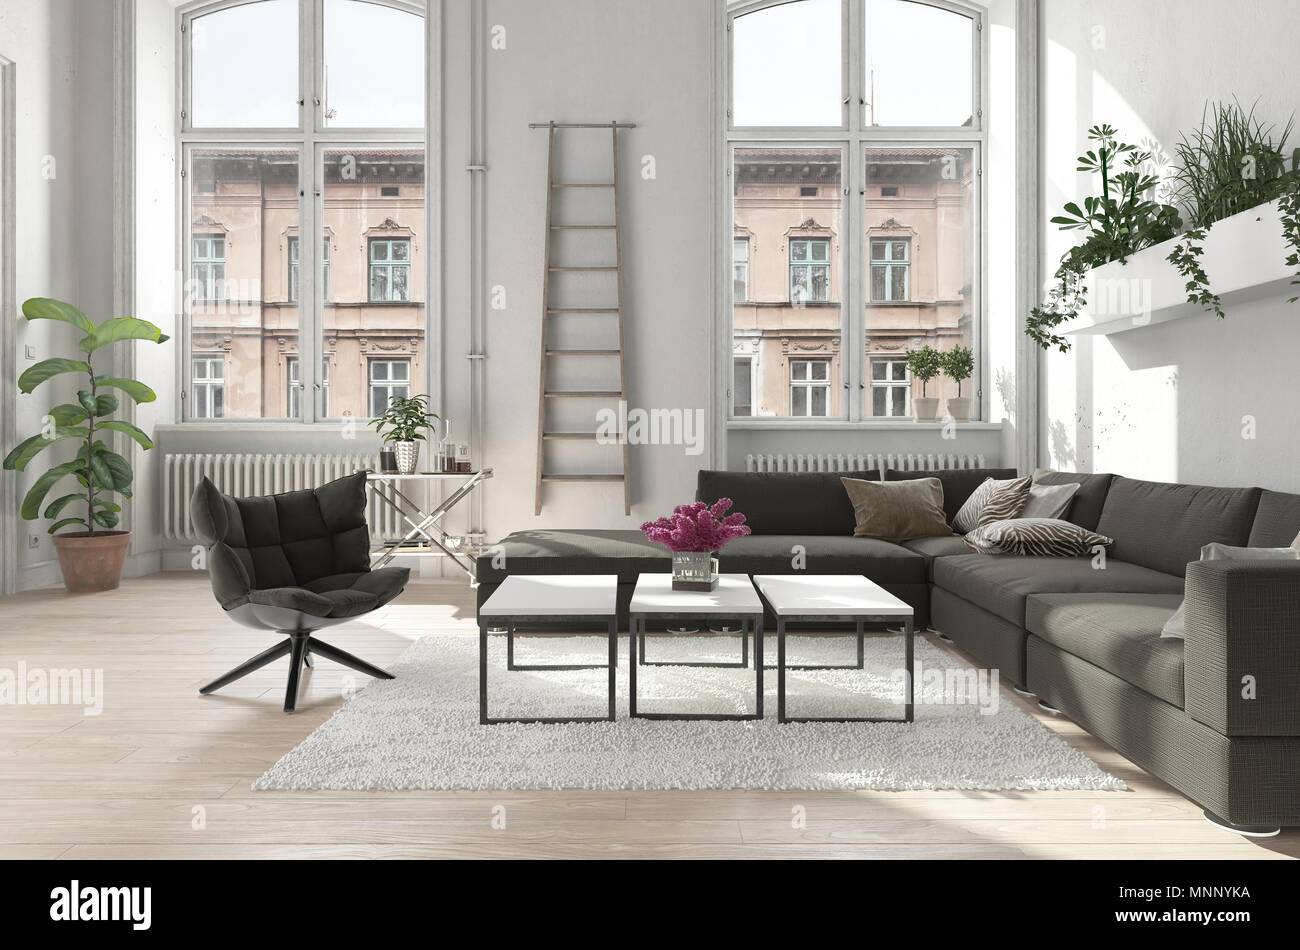 Spacious Urban Apartment Living Room With Potted Plants And Comfortable  Upholstered Sofa And Chair Lit By Two Tall Arched Windows. 3d Render